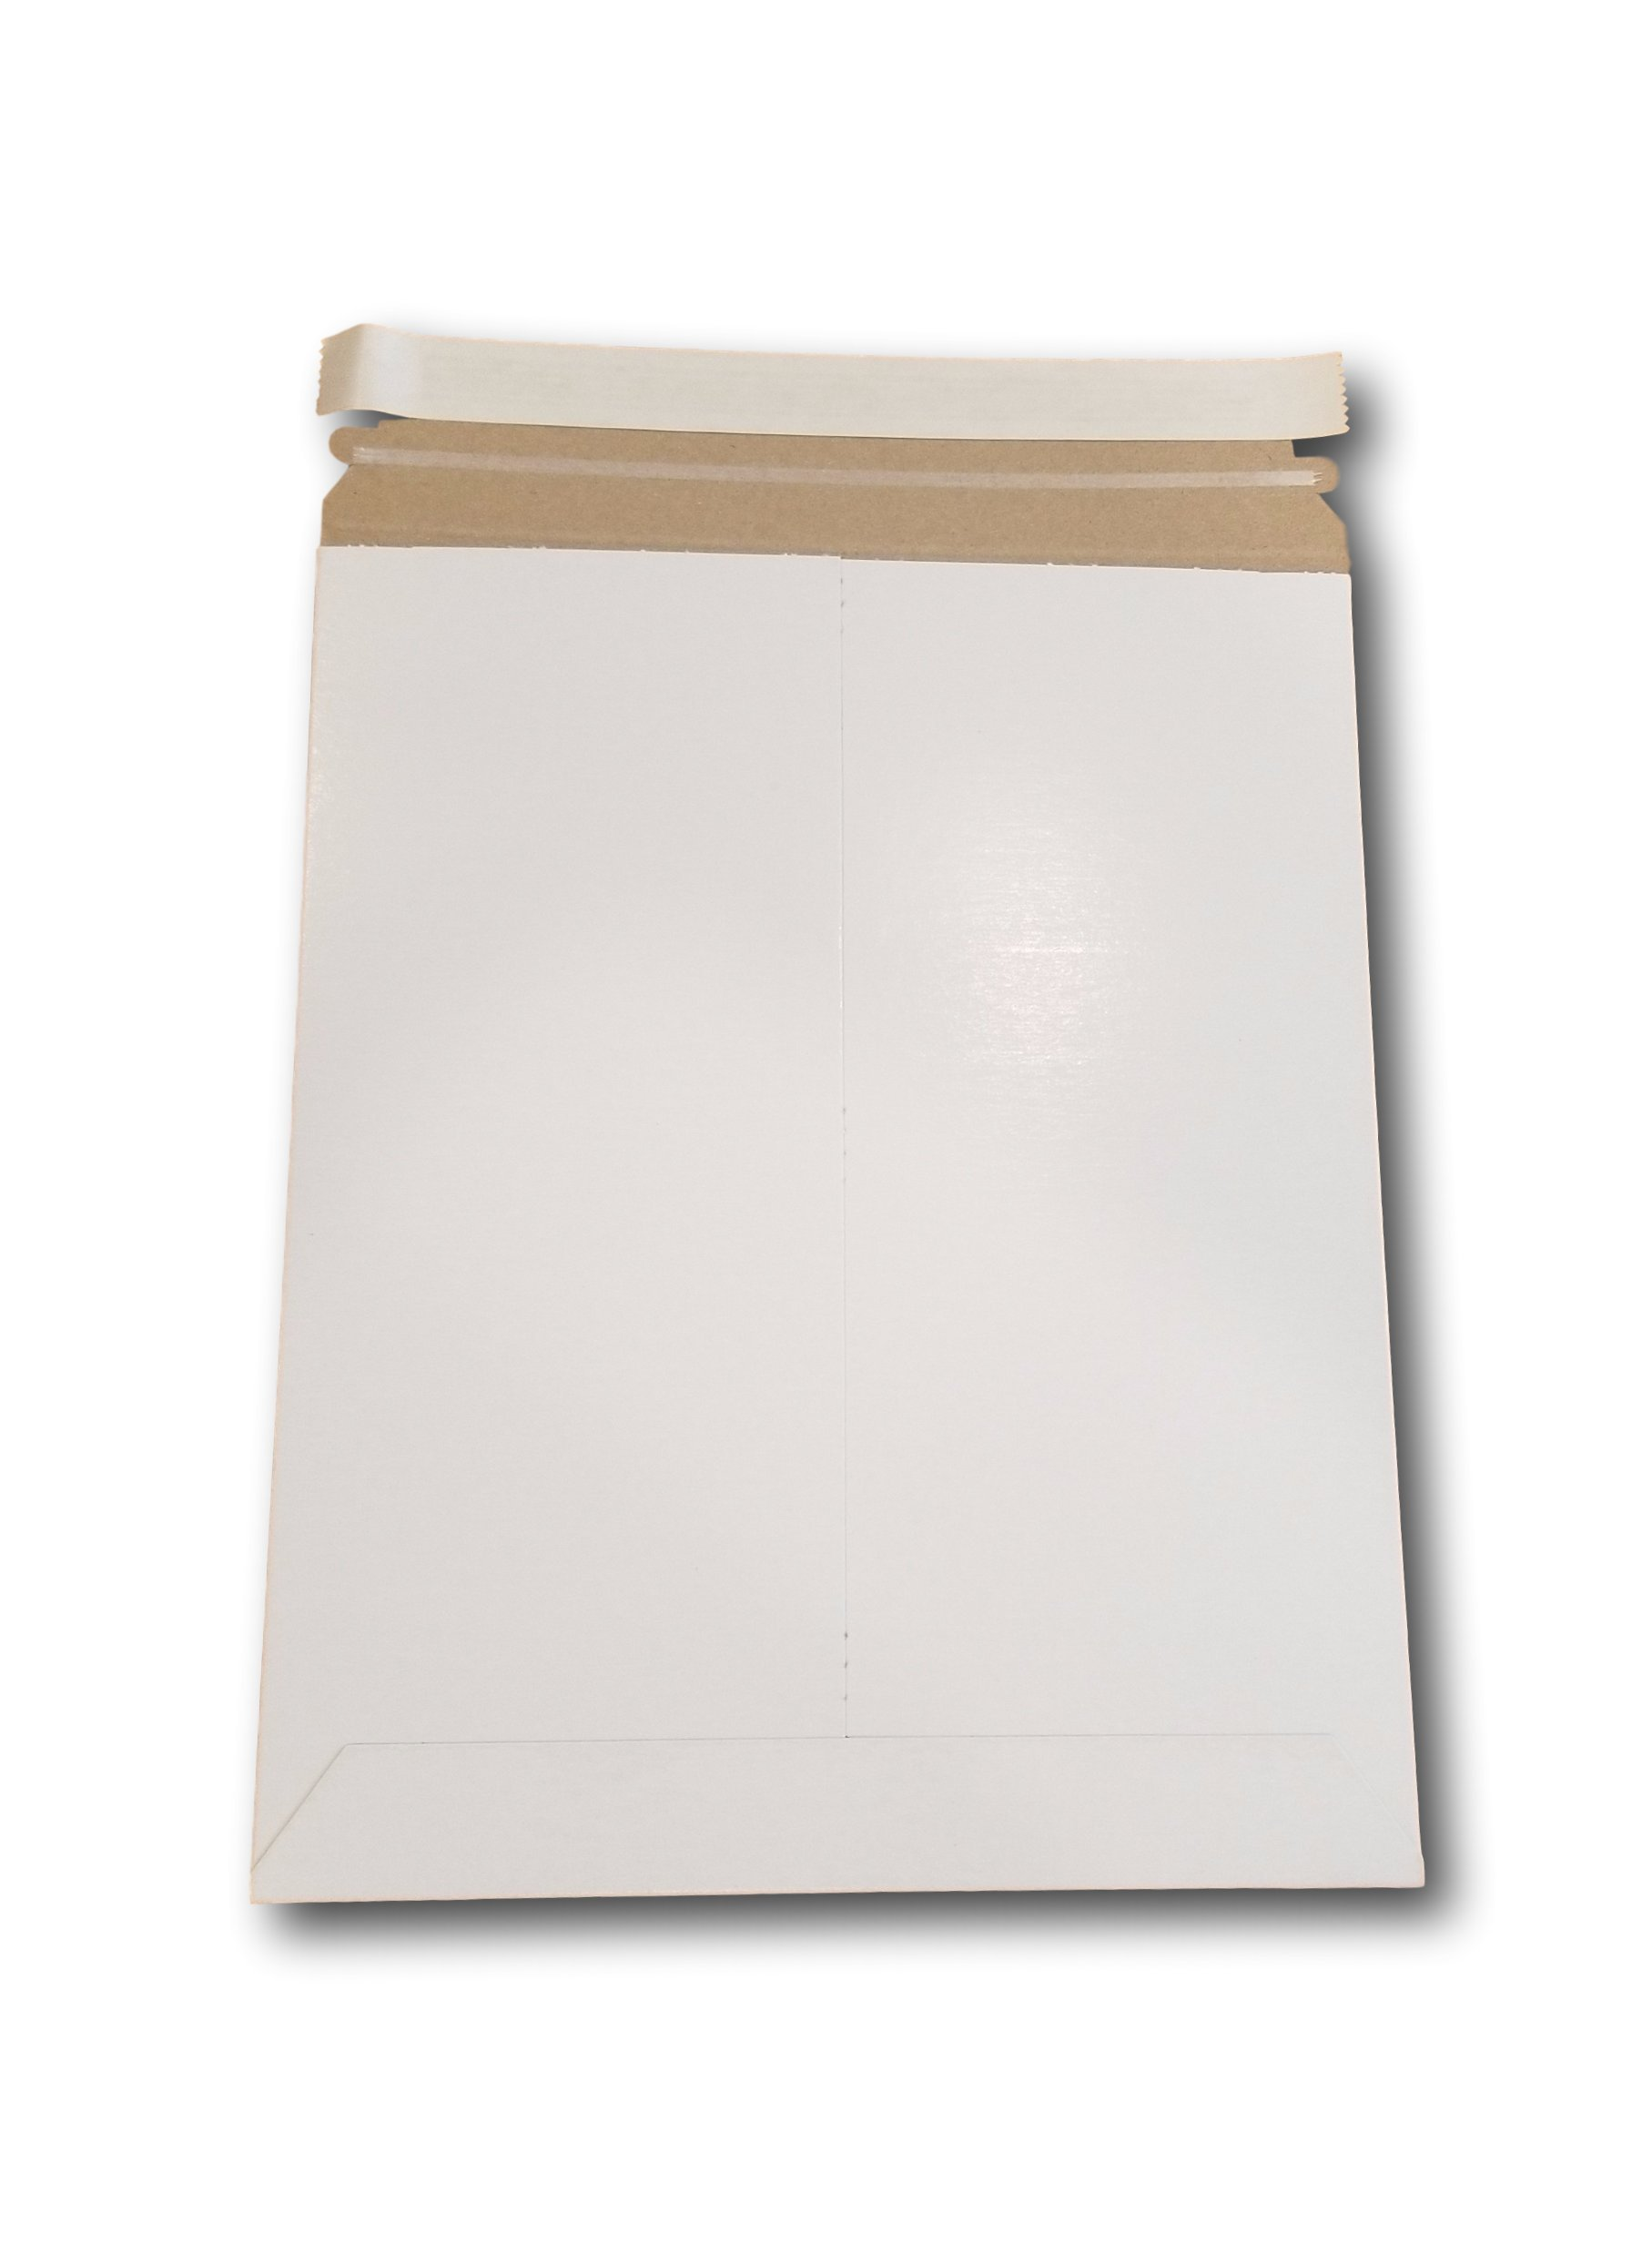 MT Products 9 3/4'' x 12 1/4'' Document/Photo Self - Seal Rigid Stay Flat Mailer/Envelope (15 Pieces)